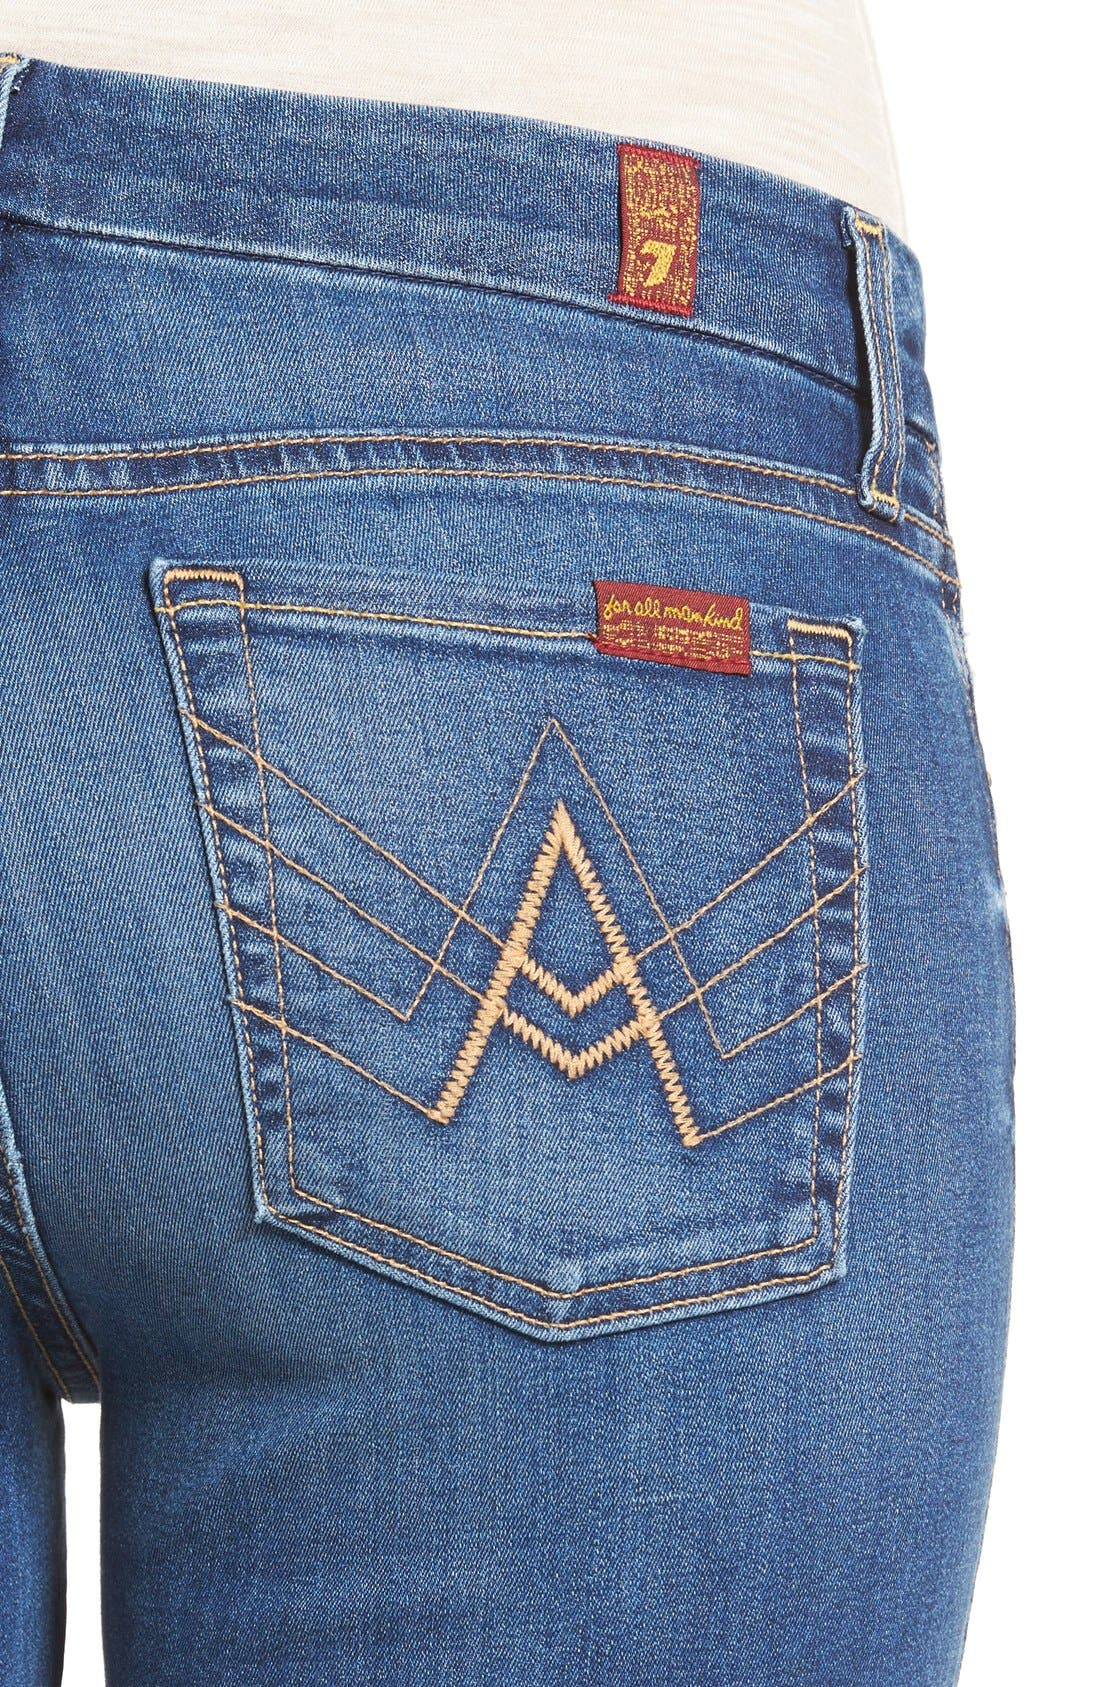 'b(air) - A Pocket' Flare Jeans,                             Alternate thumbnail 8, color,